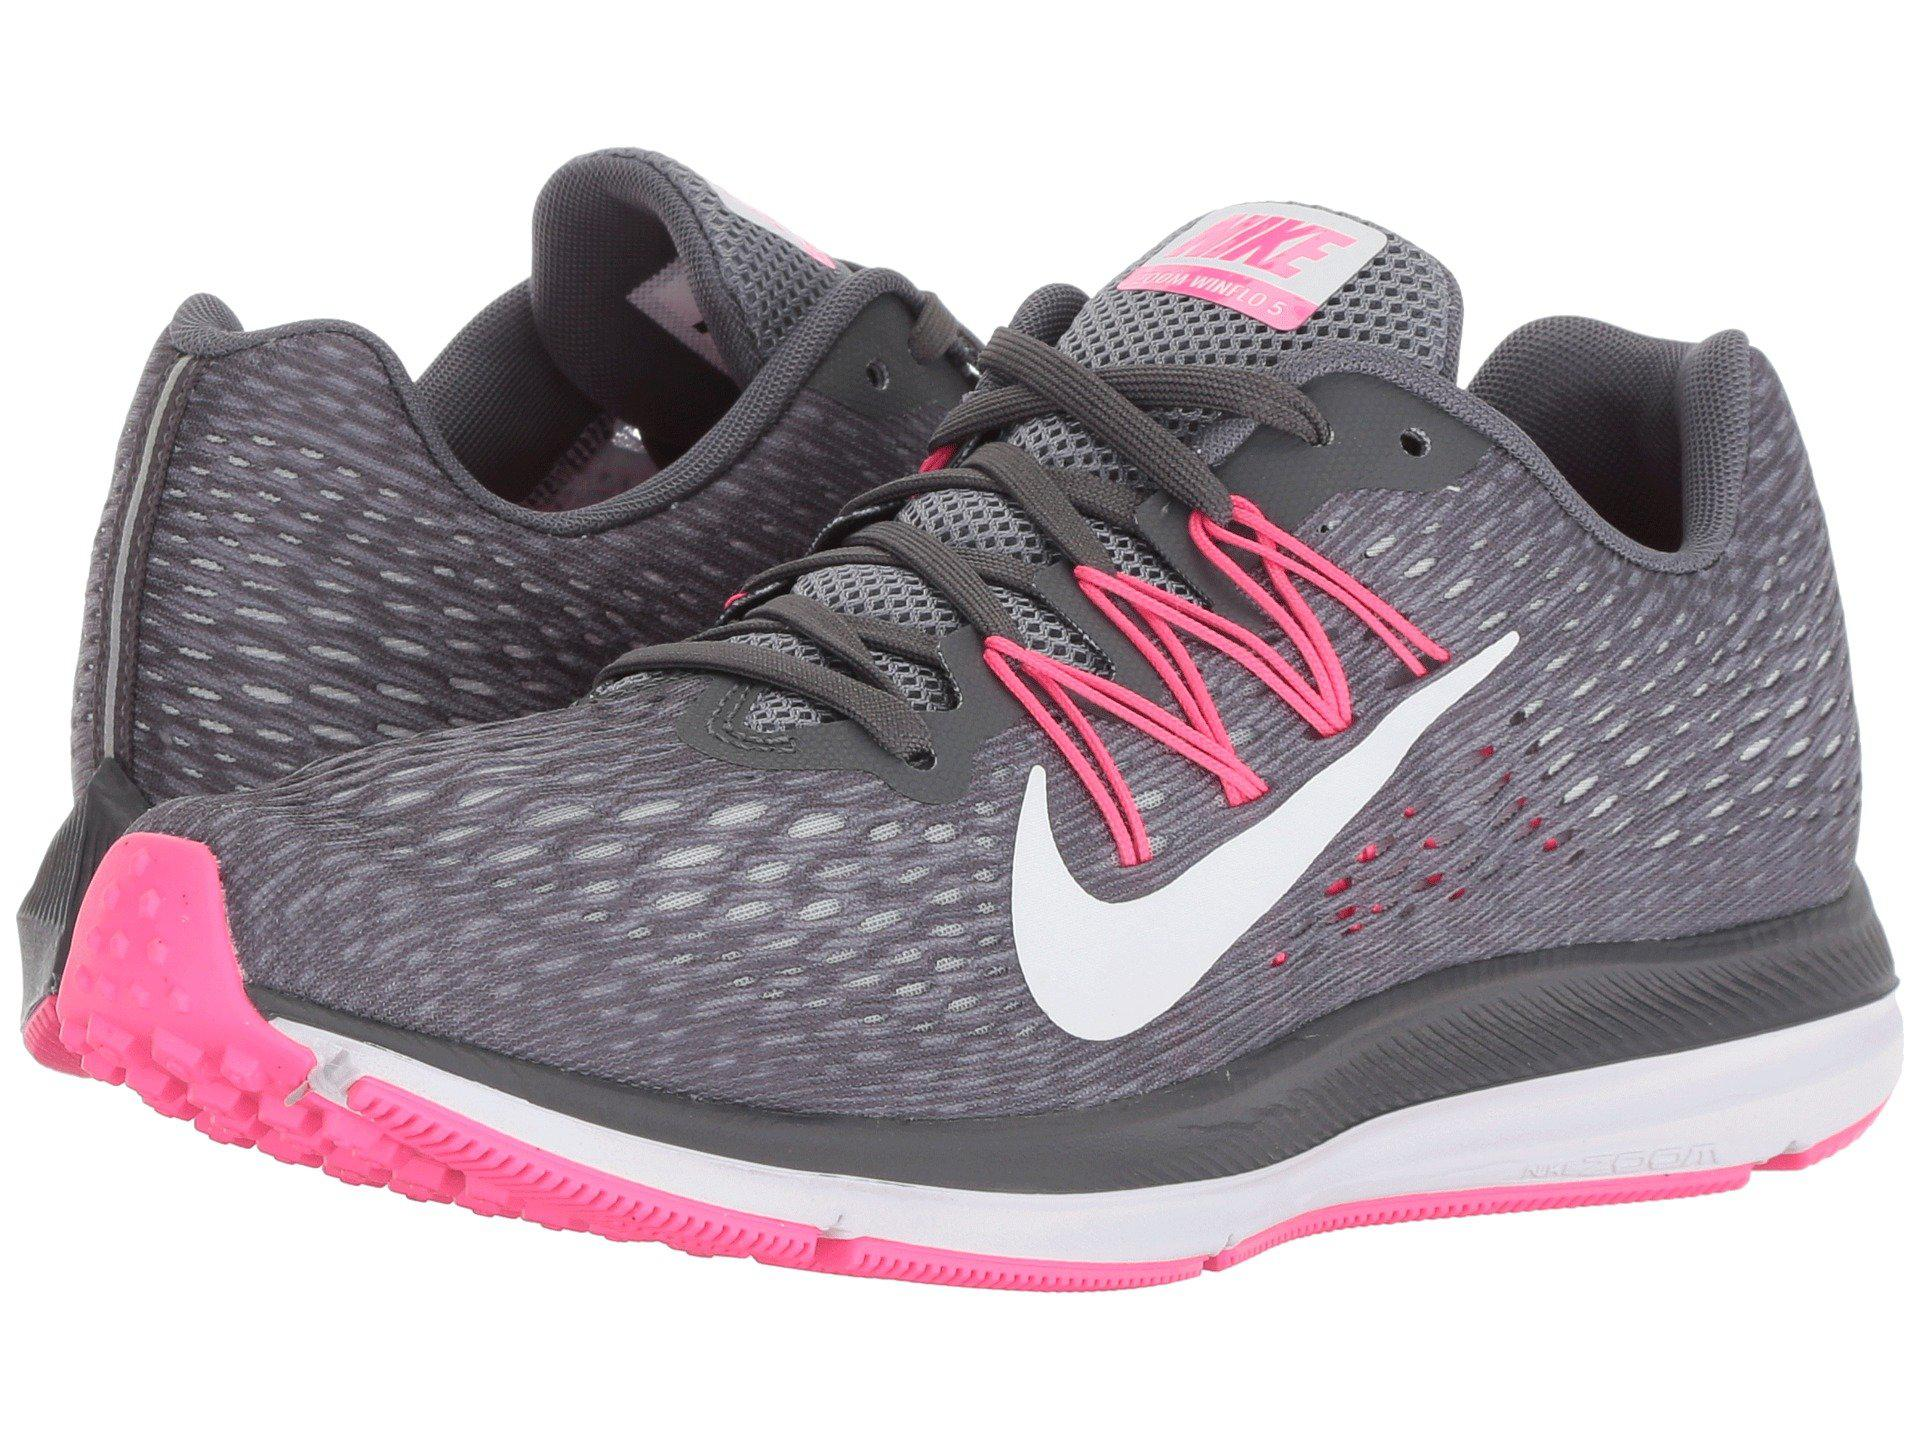 huge discount 7df6f 318b2 Lyst - Nike Air Zoom Winflo 5 (blackanthracite) Womens Runni